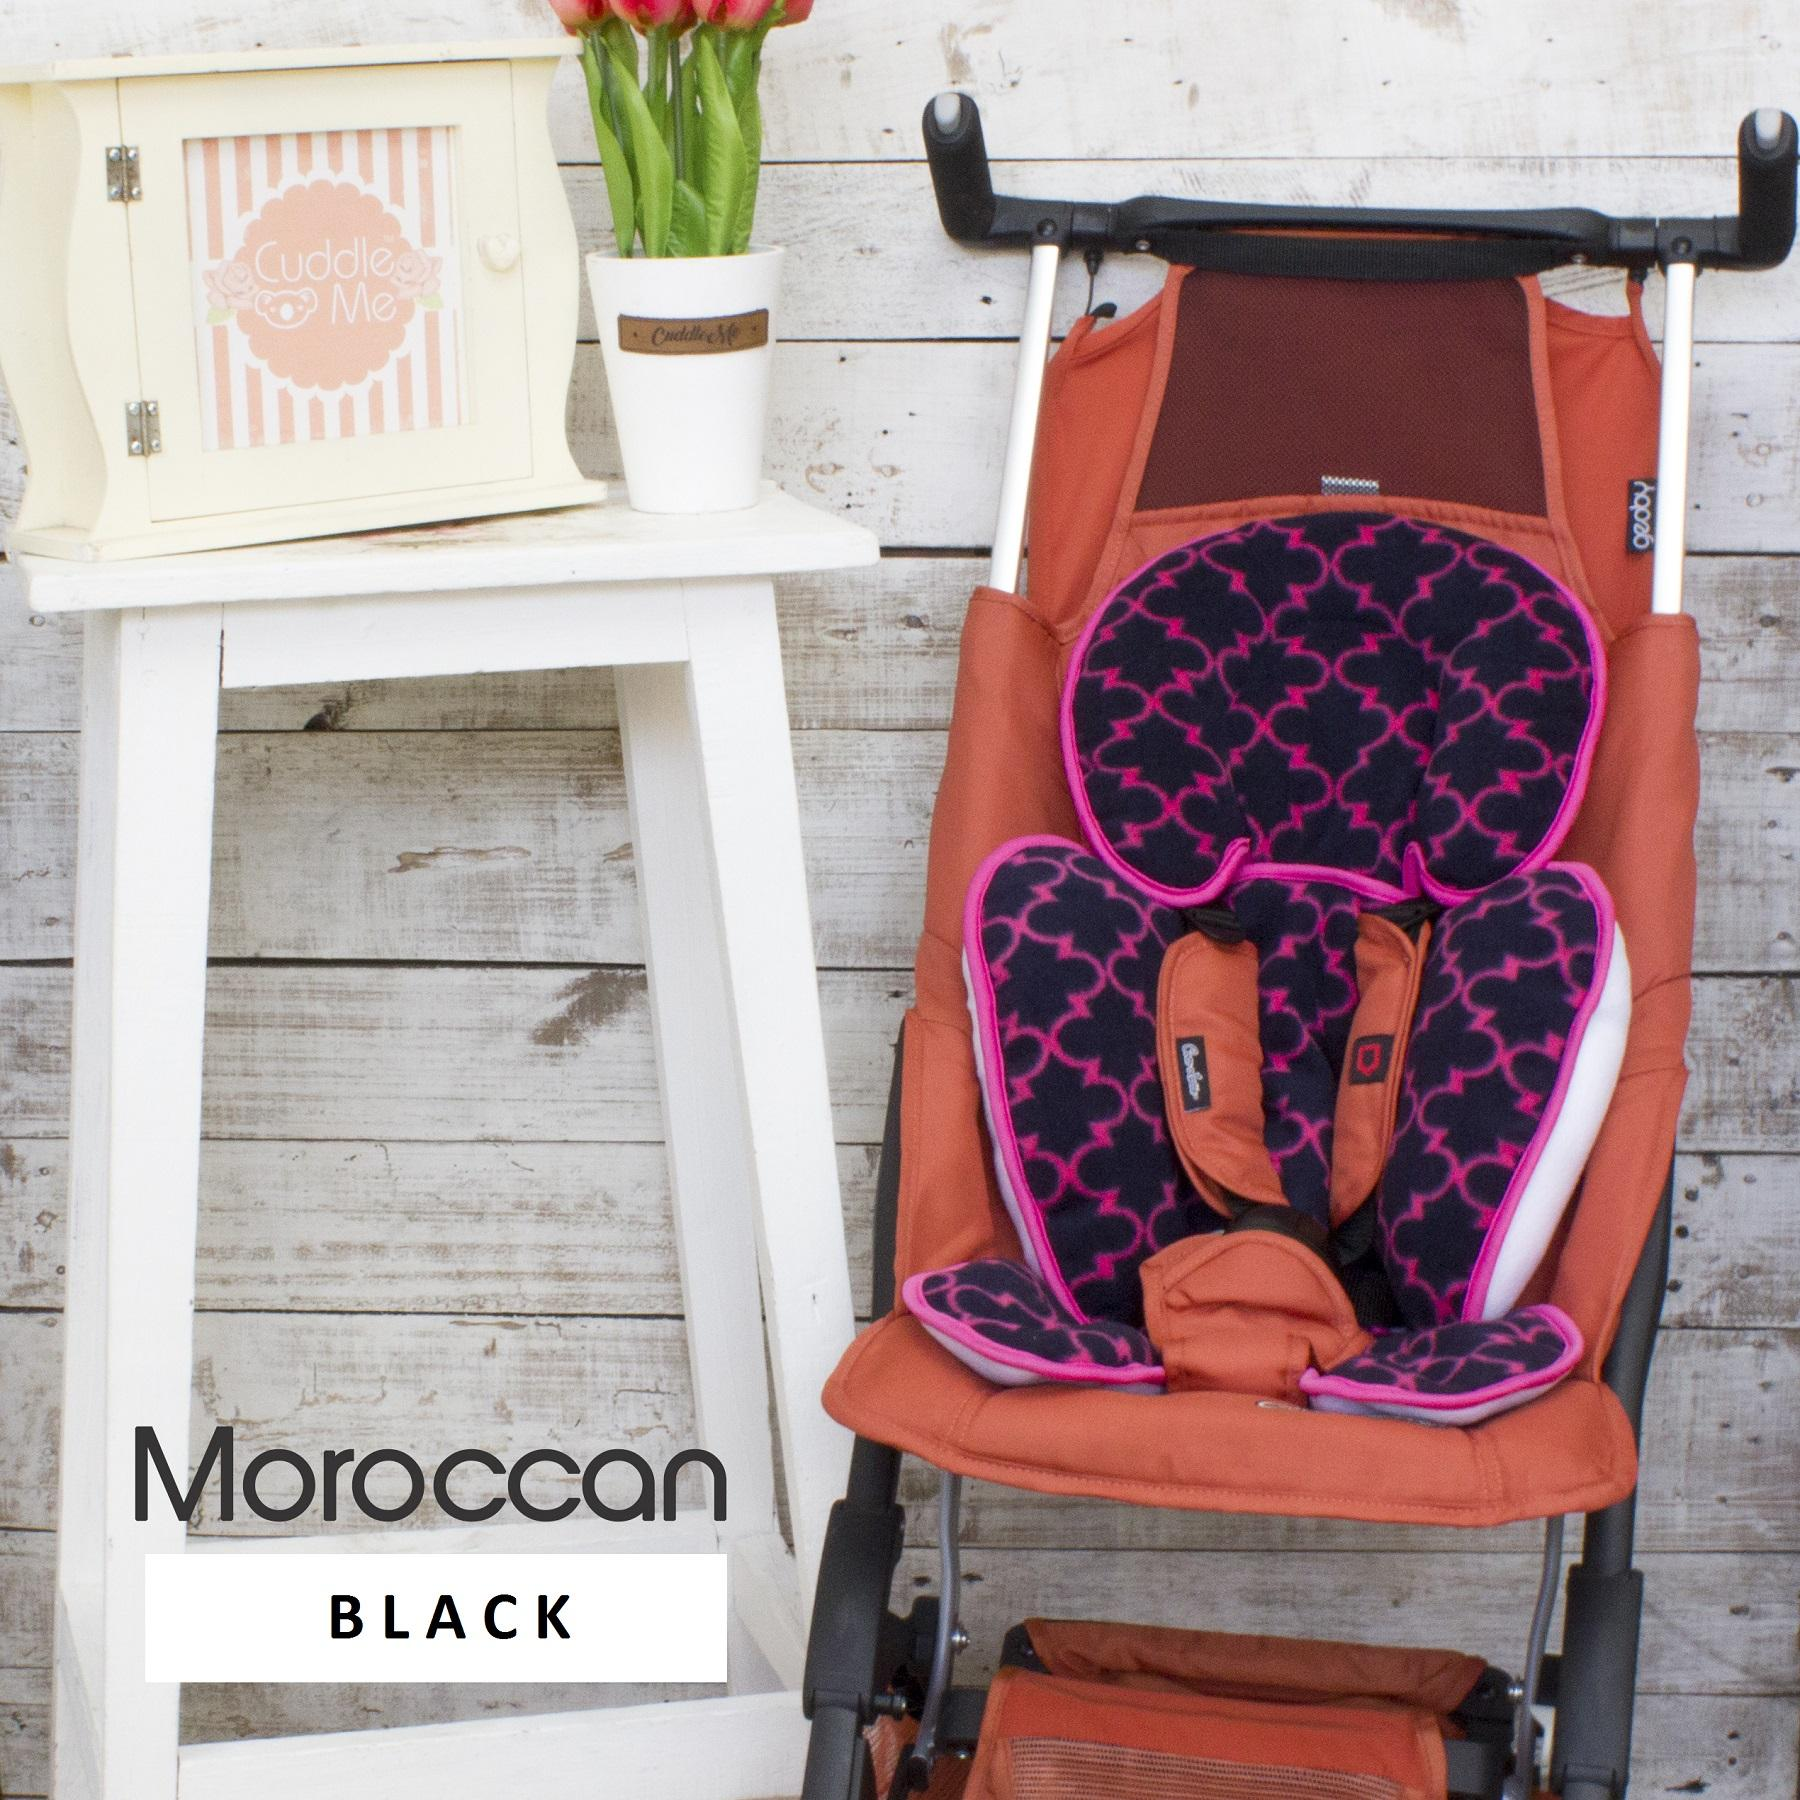 Alas Stroller nyaman / SeatPad cuddle me / Mix color / Seat Pad CuddleMe (Moroccan